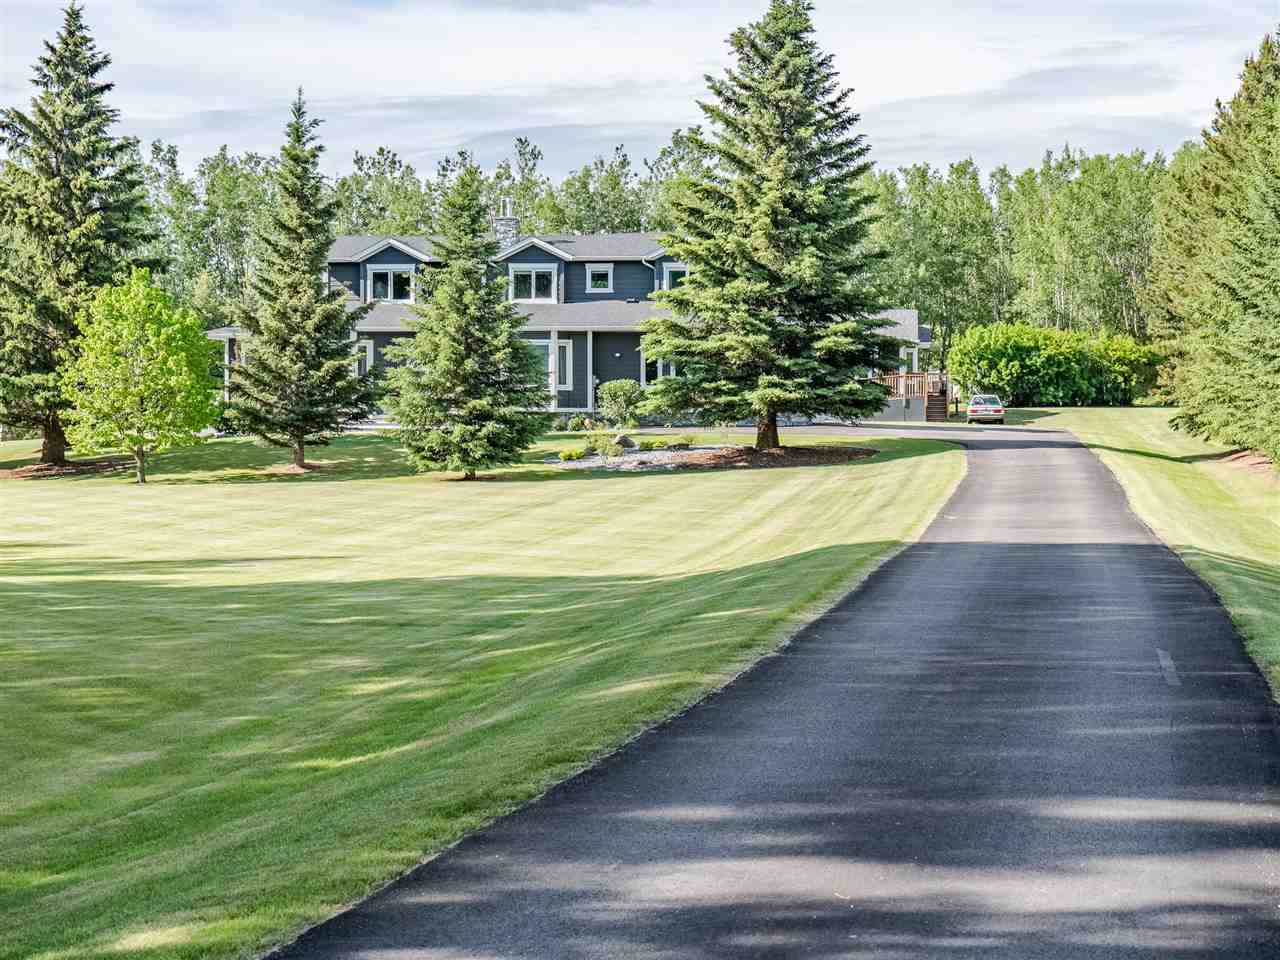 Main Photo: 182 52514 RGE RD 223: Rural Strathcona County House for sale : MLS®# E4213977